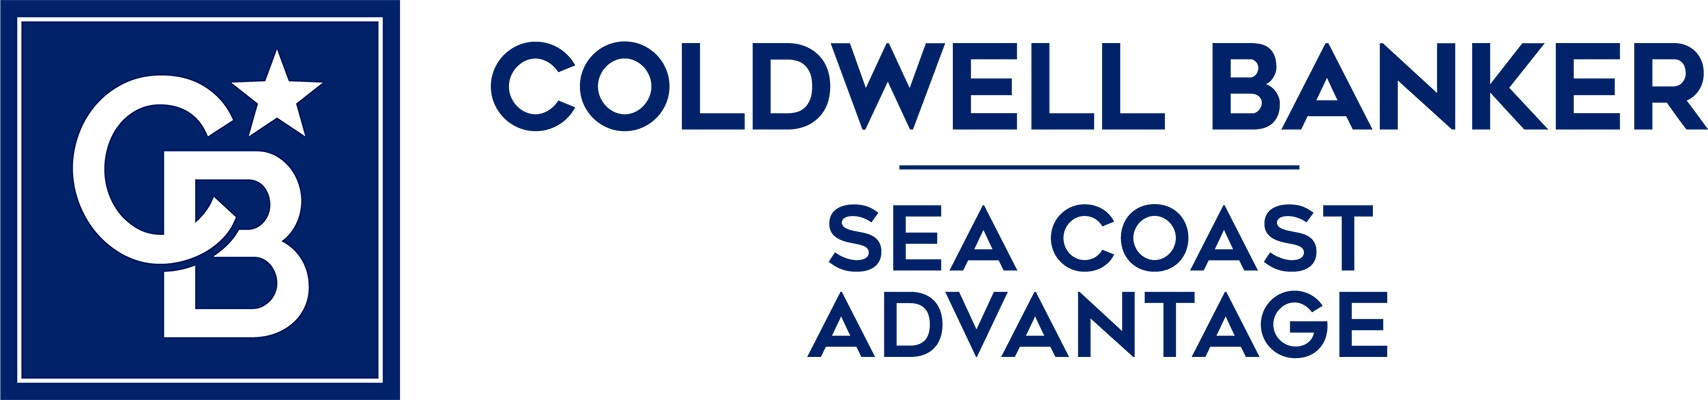 Colby Averitte - Coldwell Banker Sea Coast Advantage Realty